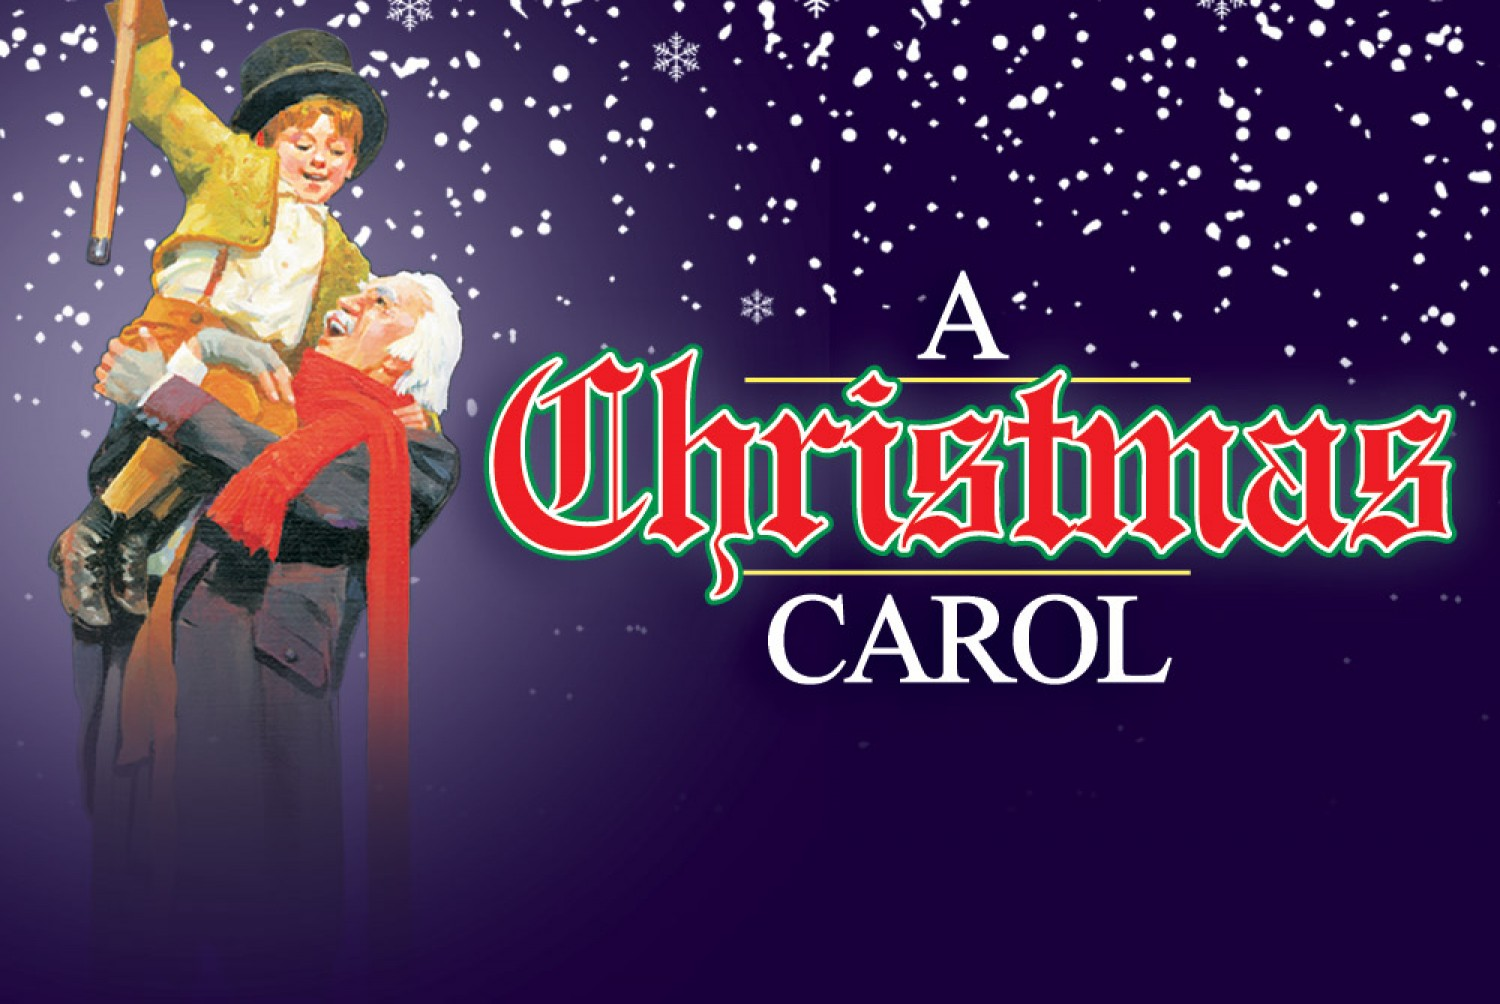 A Christmas Carol | December 4 | EKUCenter.com